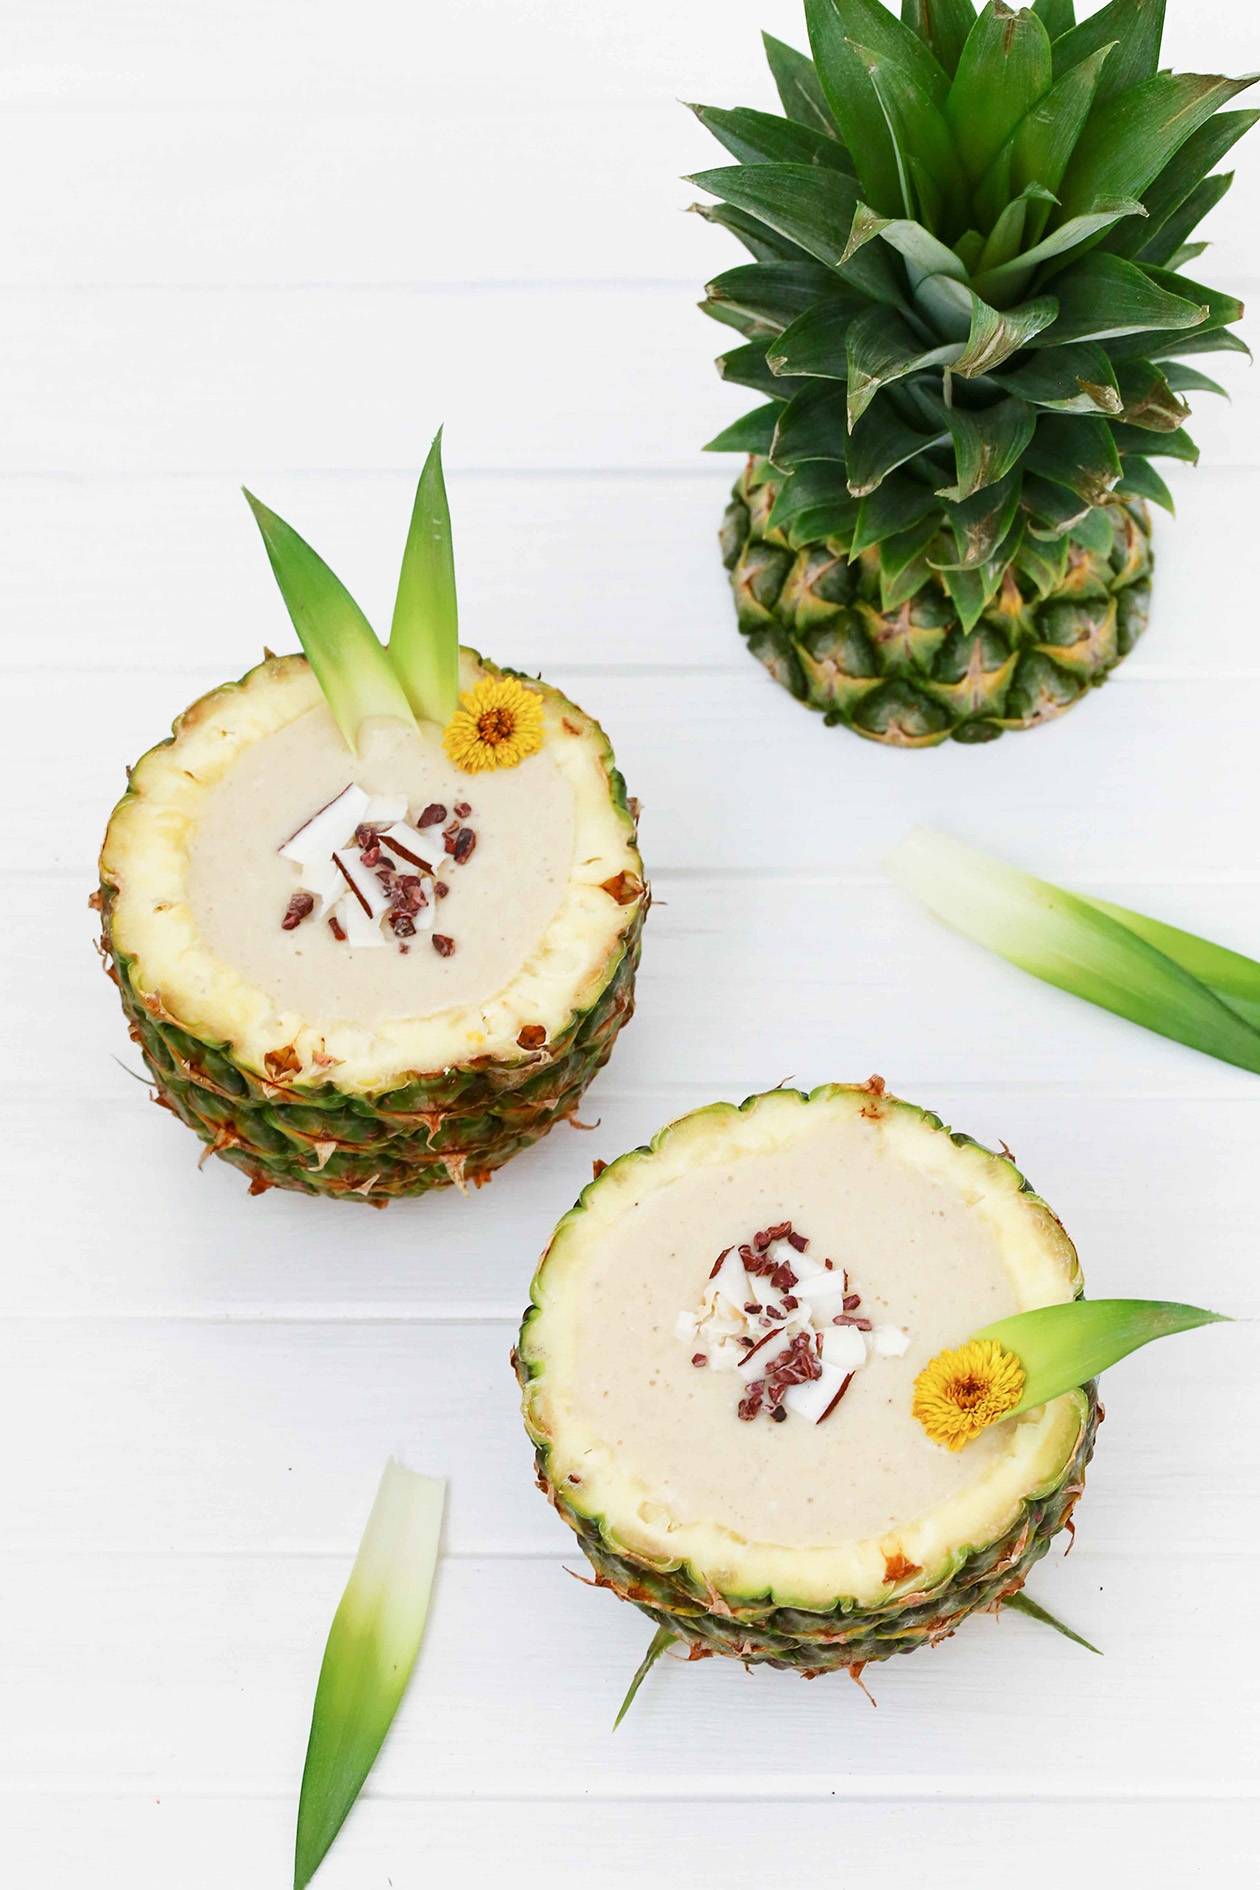 Pina Colada Nicecream http://wp.me/p6GO5w-Hb